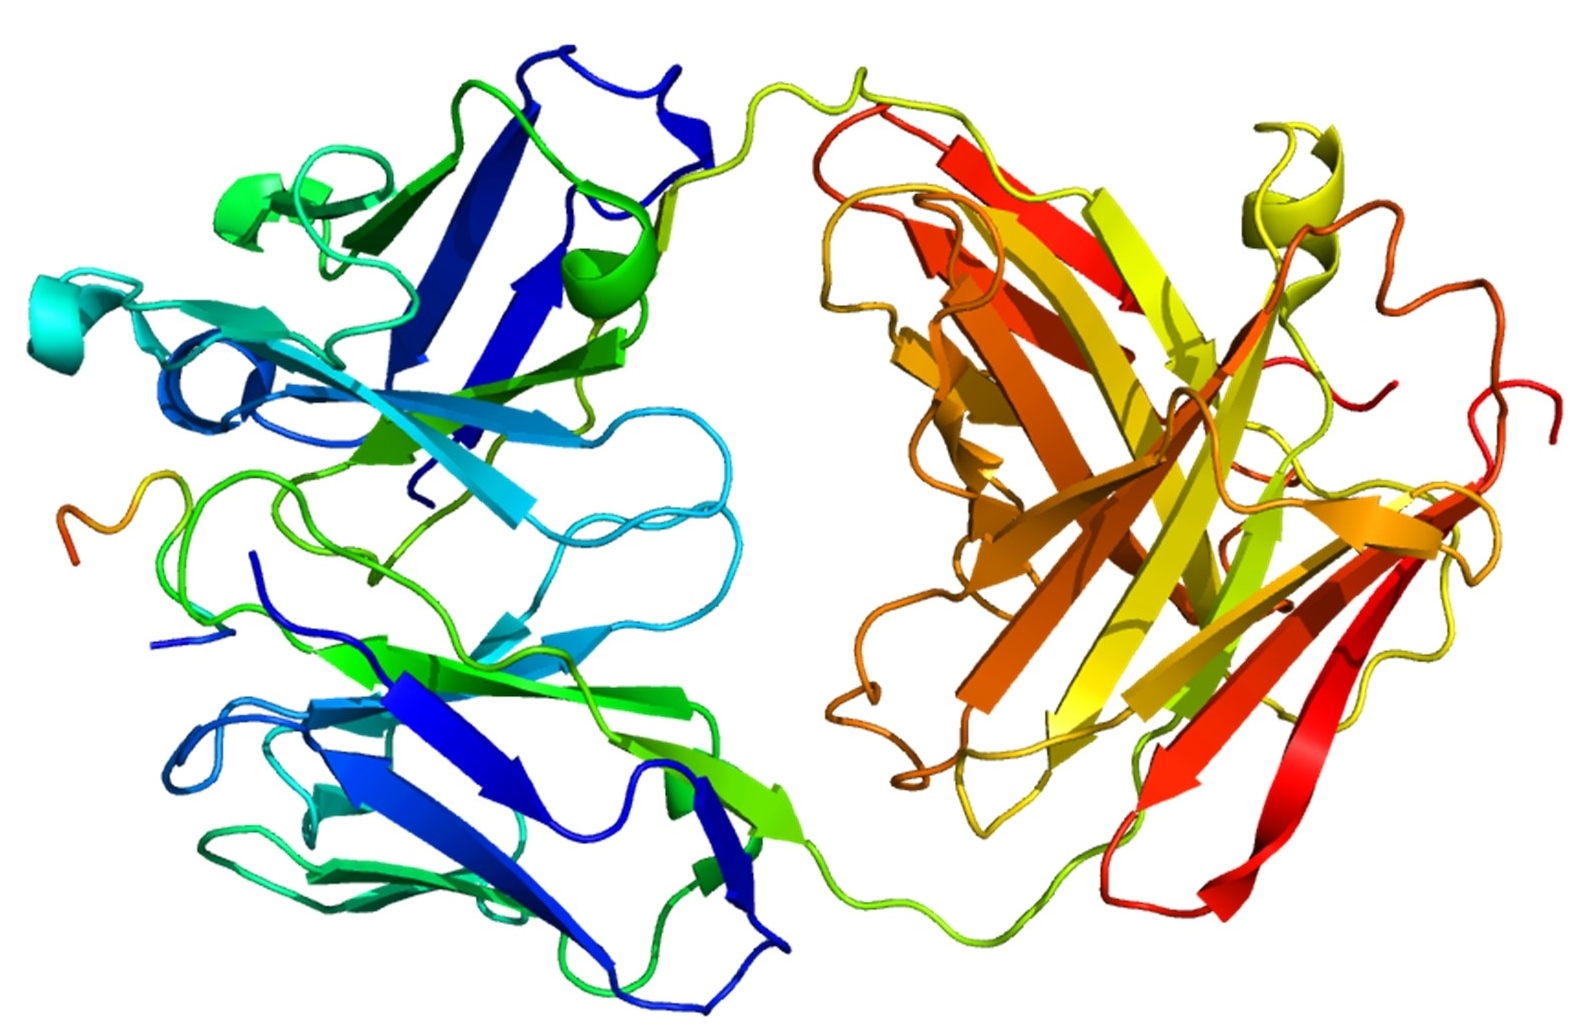 High value proteins are selected and their genes designed to maximize their potential for production in Triton's host algae.